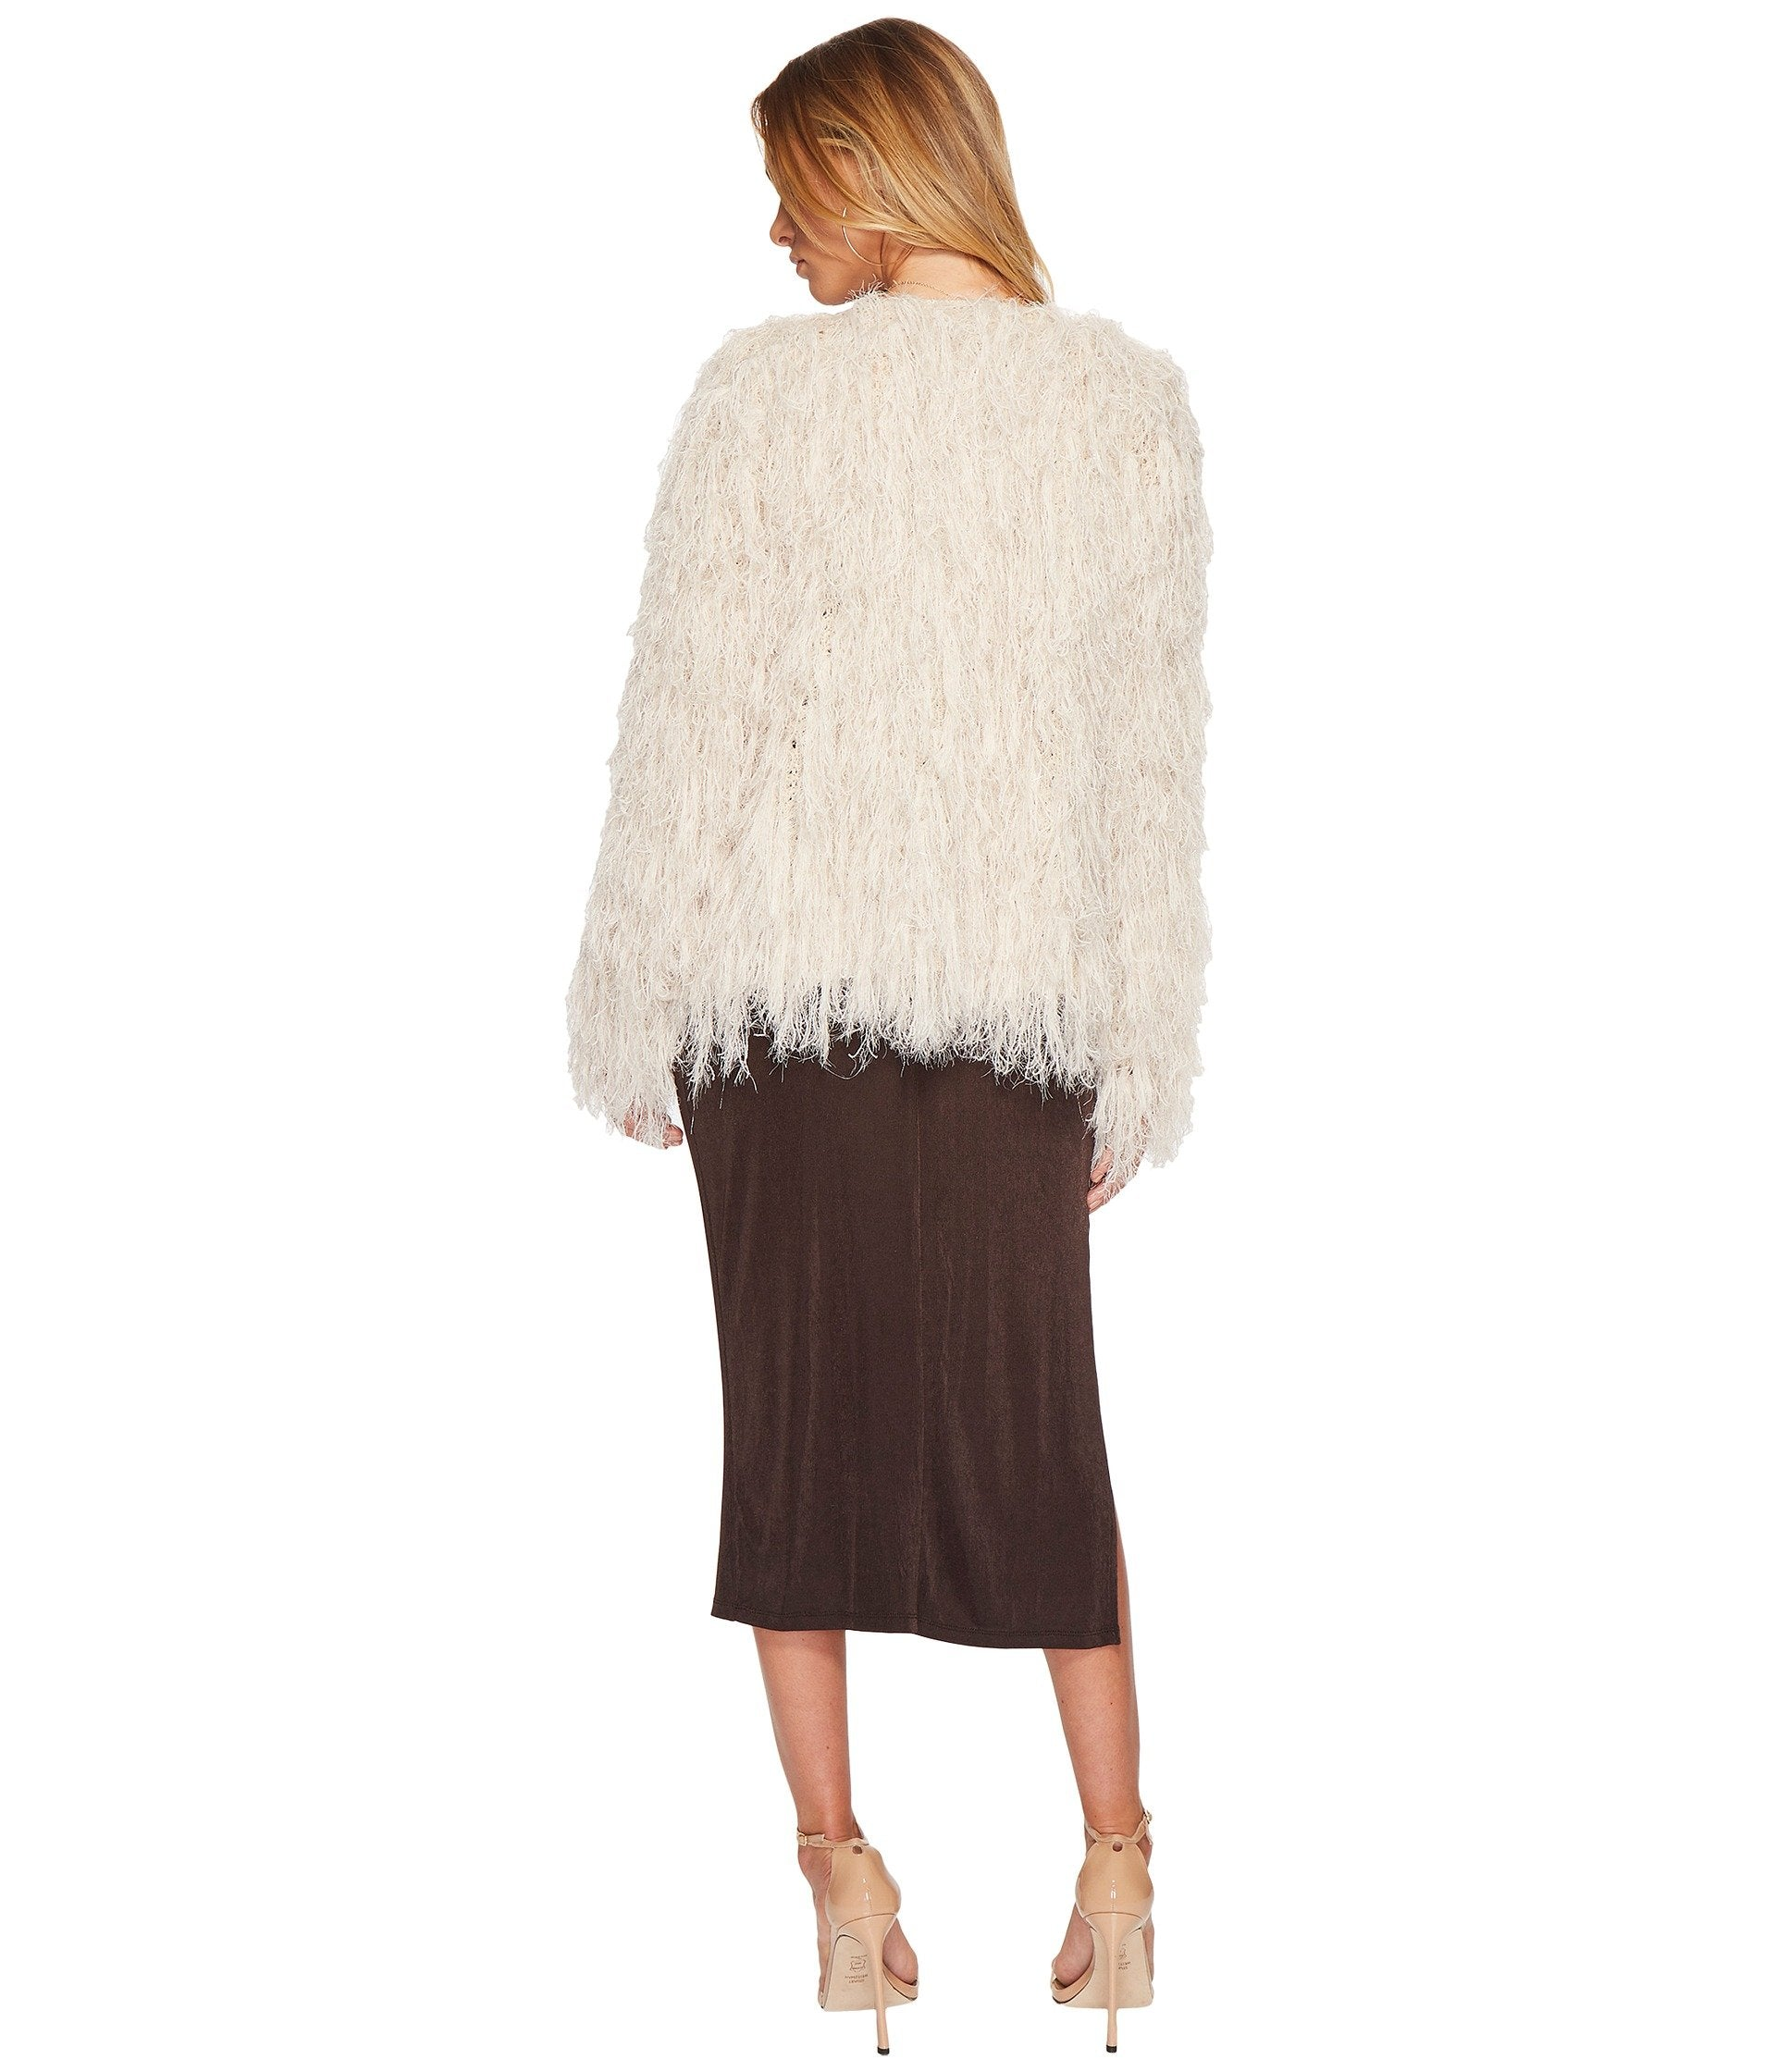 ASTR Sasha Shaggy Cardigan Sweater